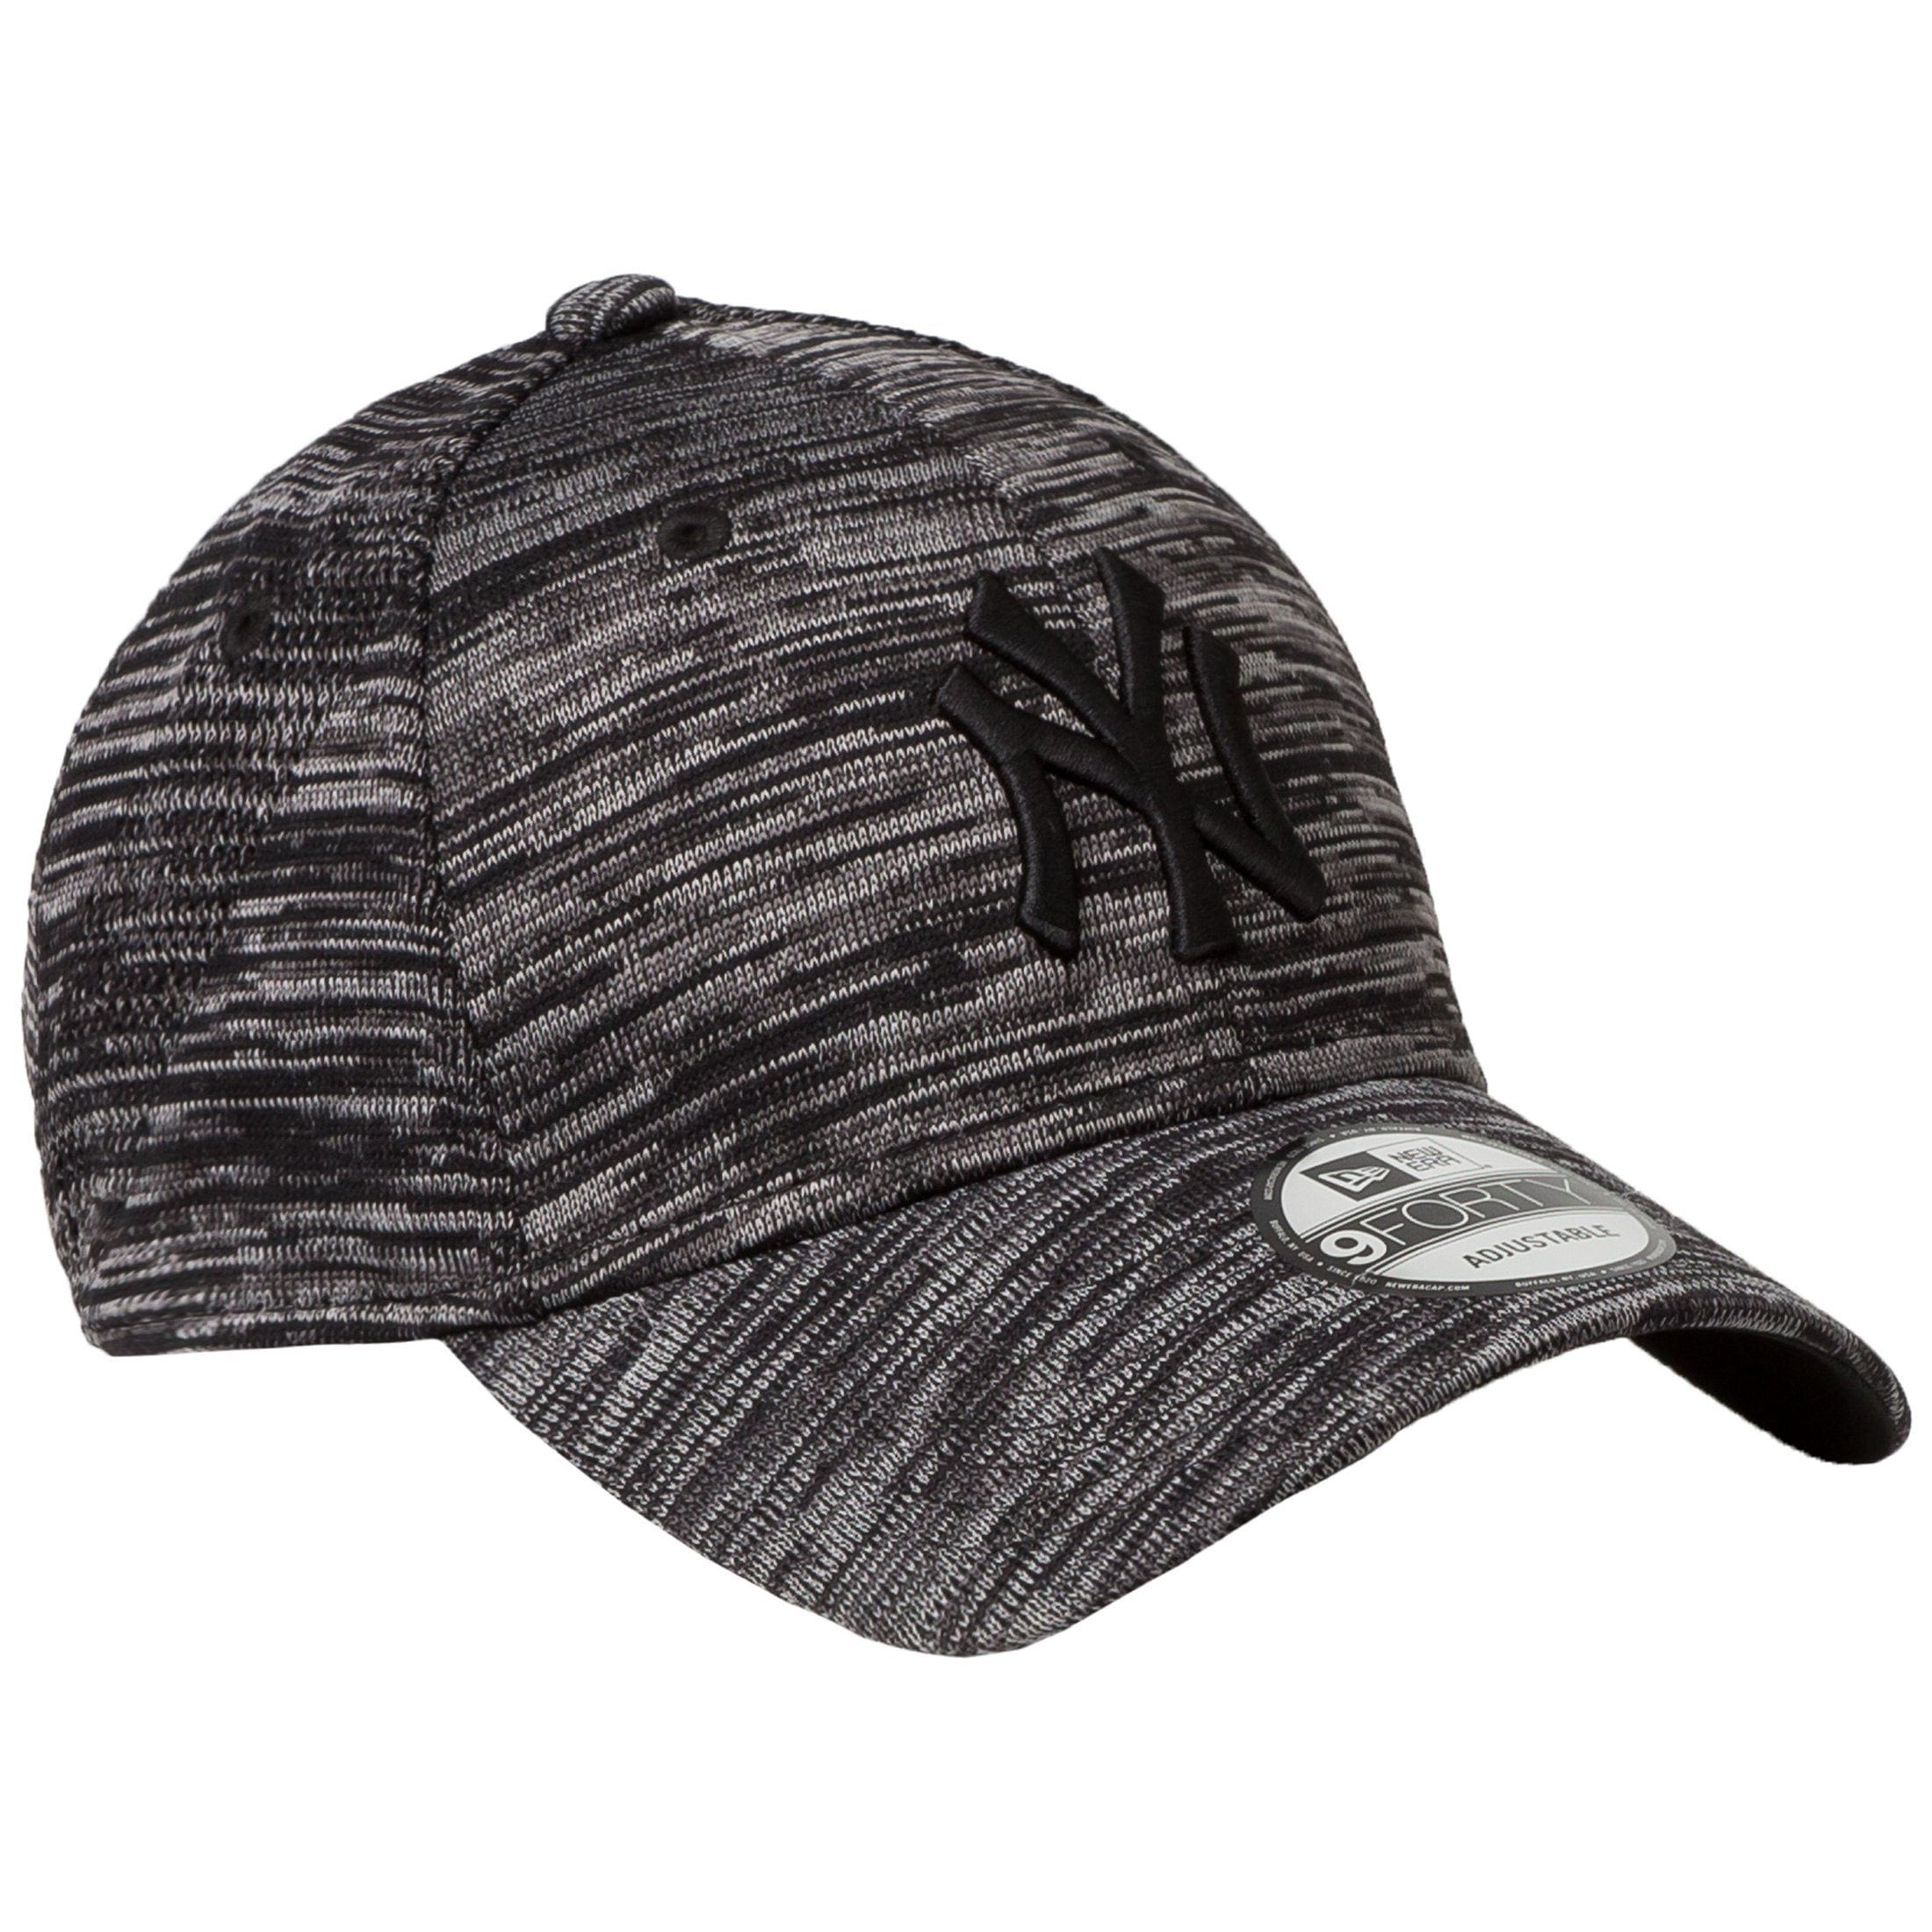 9fcdd0c9 Bildquelle: New Era Baseball Cap »9forty Mlb Engineered Fit New York Yankees «